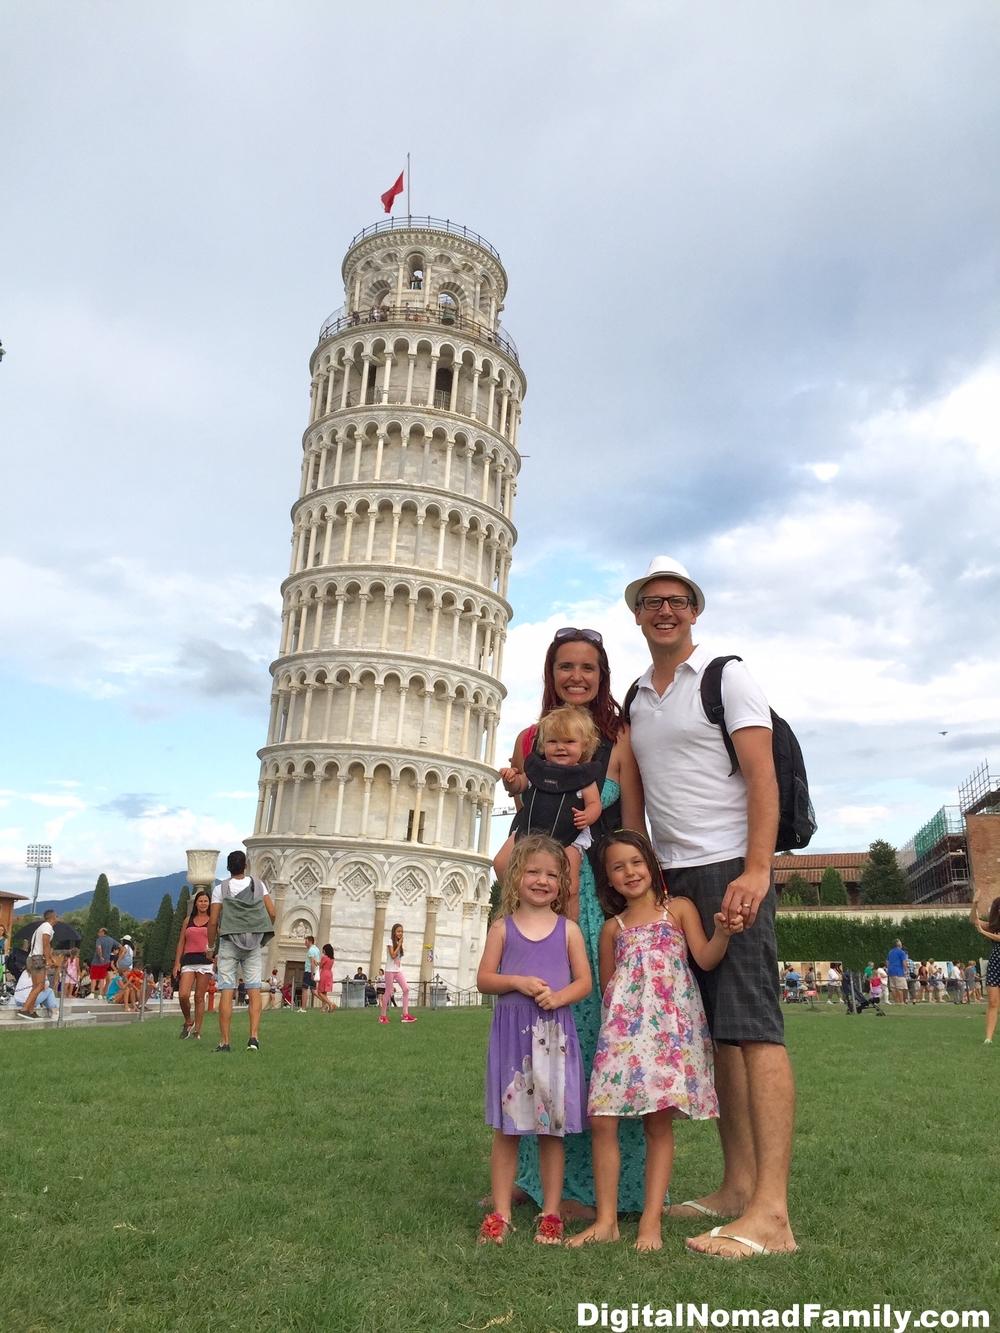 We loved getting to see the Leaning Tower of Pisa in person!